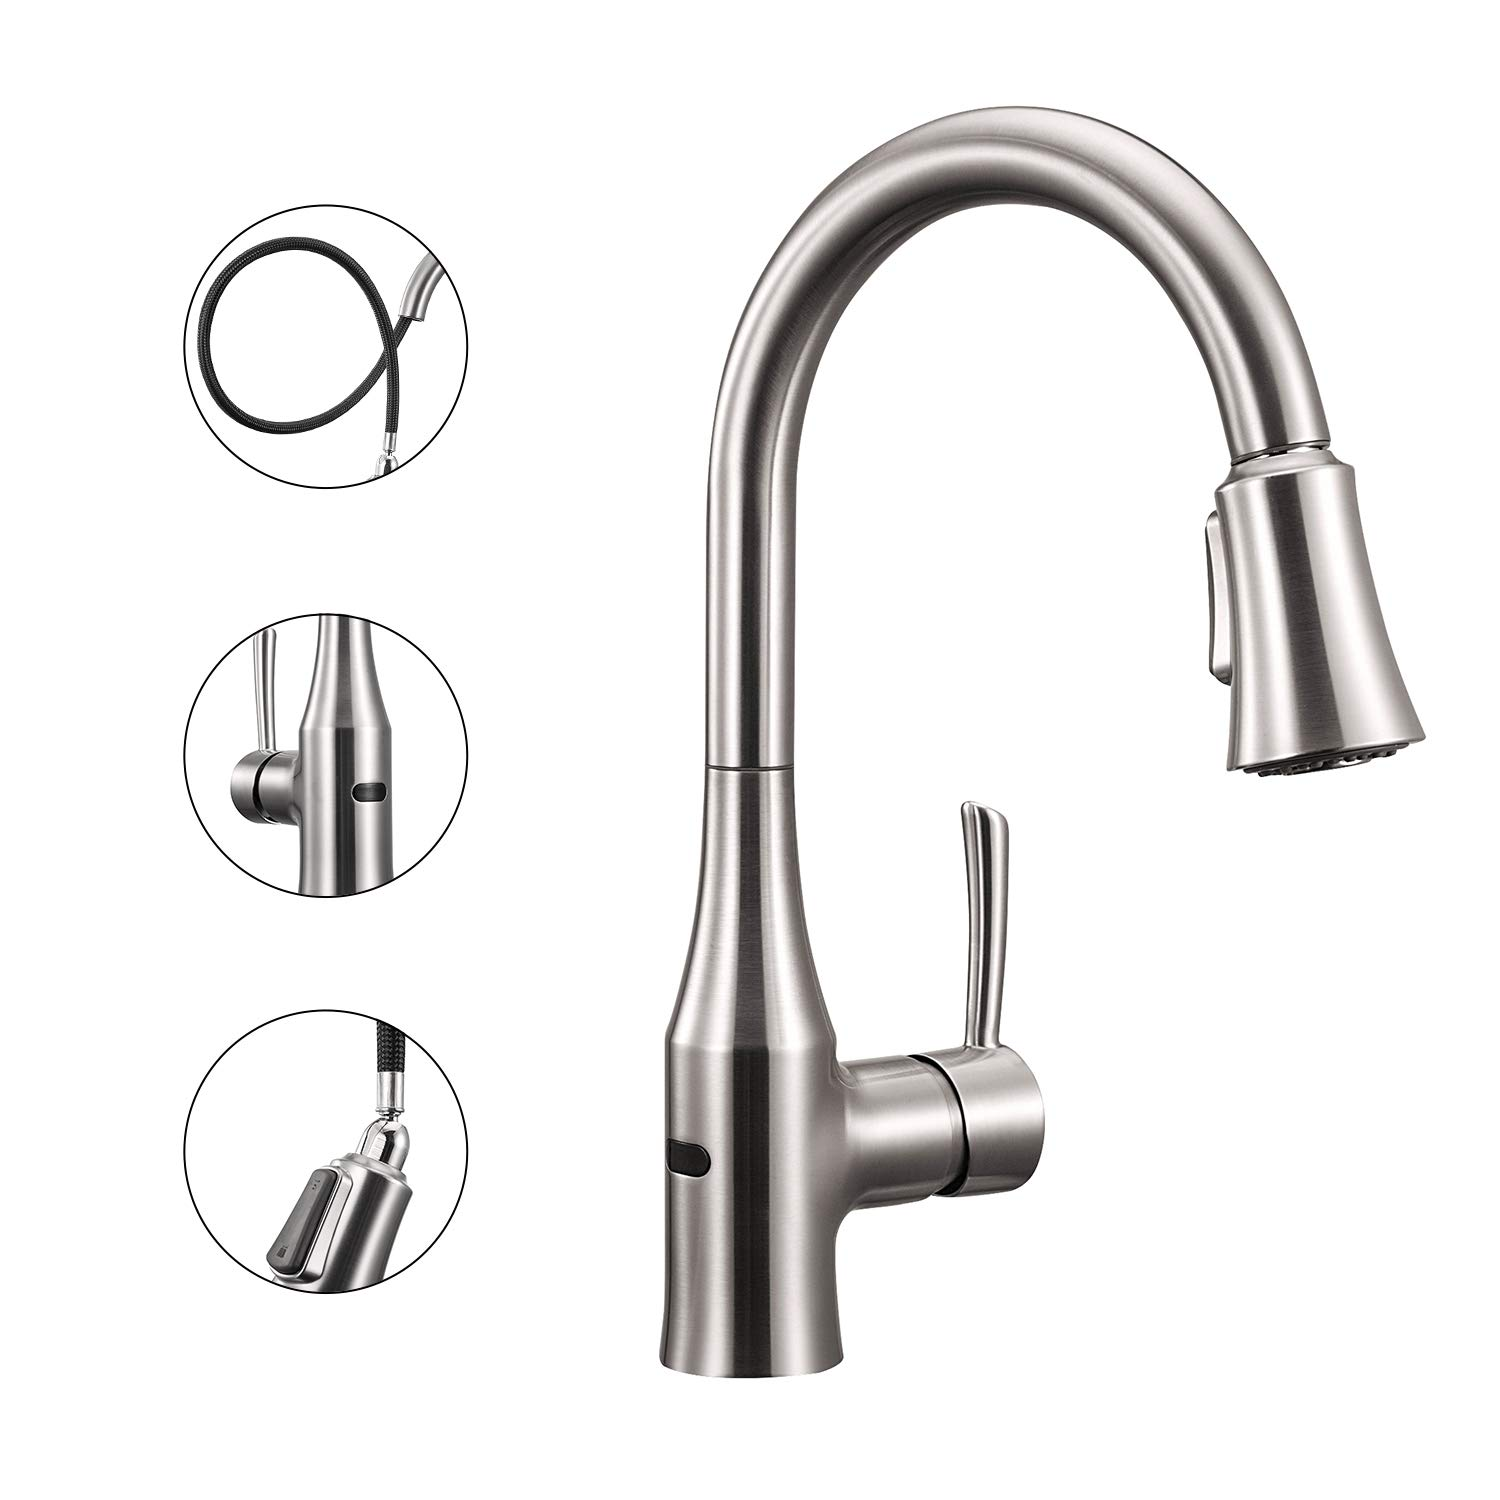 Touchless Sensor Kitchen Sink Faucet For 117 39 Shipped Reg